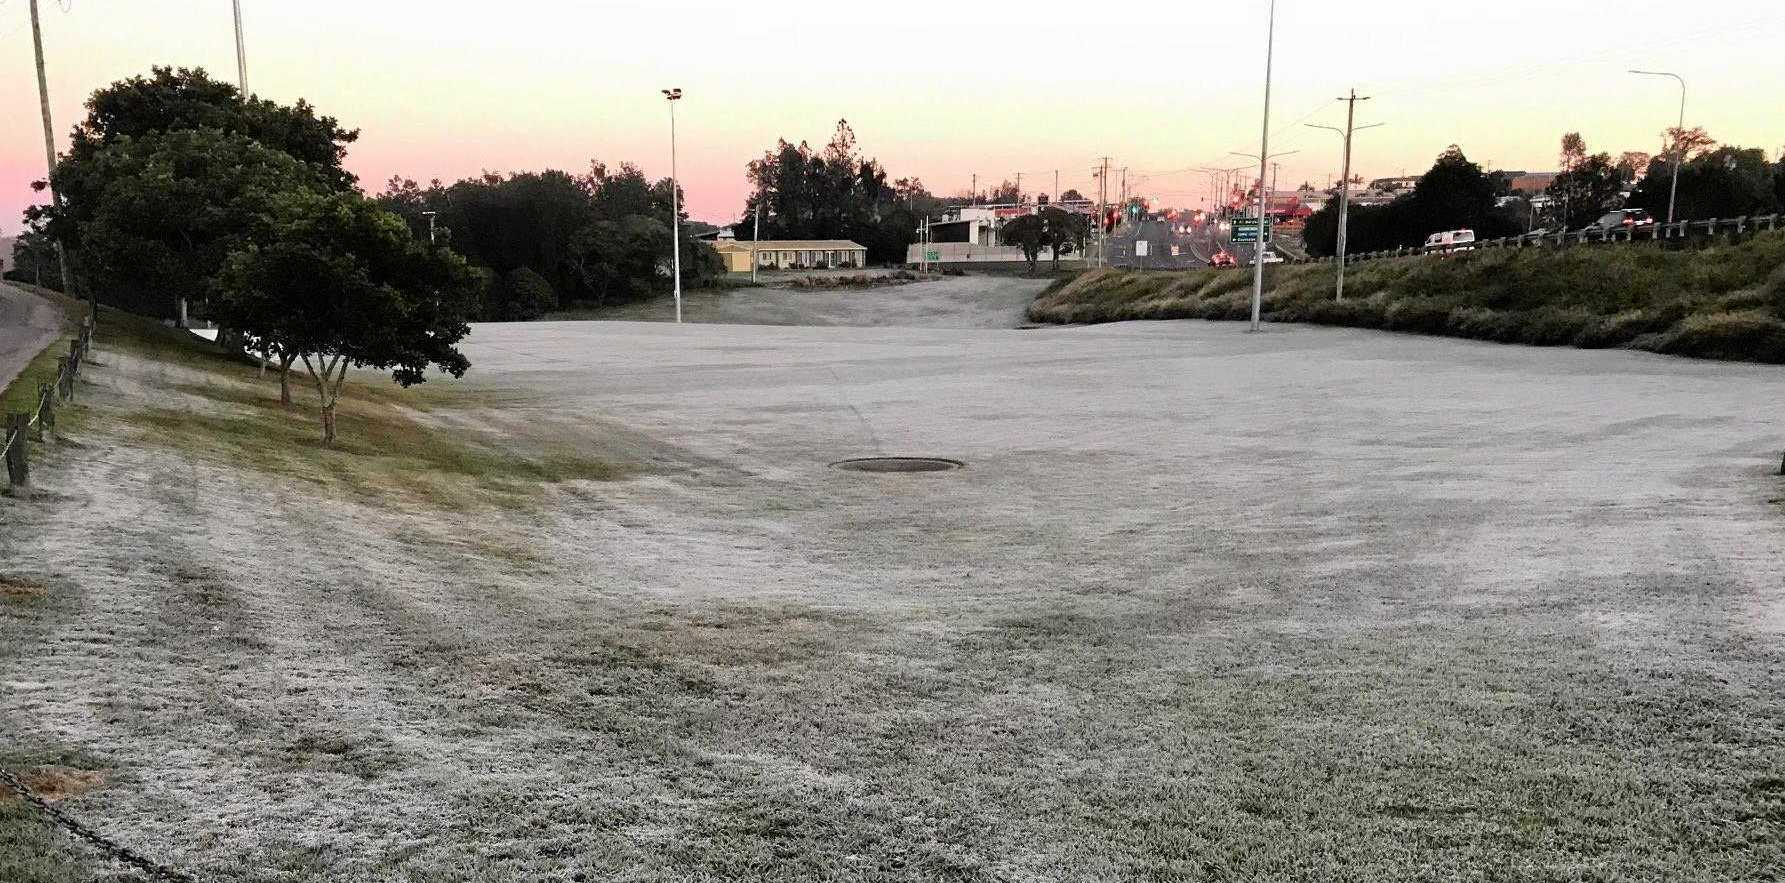 HEAVY FROST: Residents awoke to another cooler morning in Gympie with temperatures plummeting below zero. Photo taken at Albert Park.